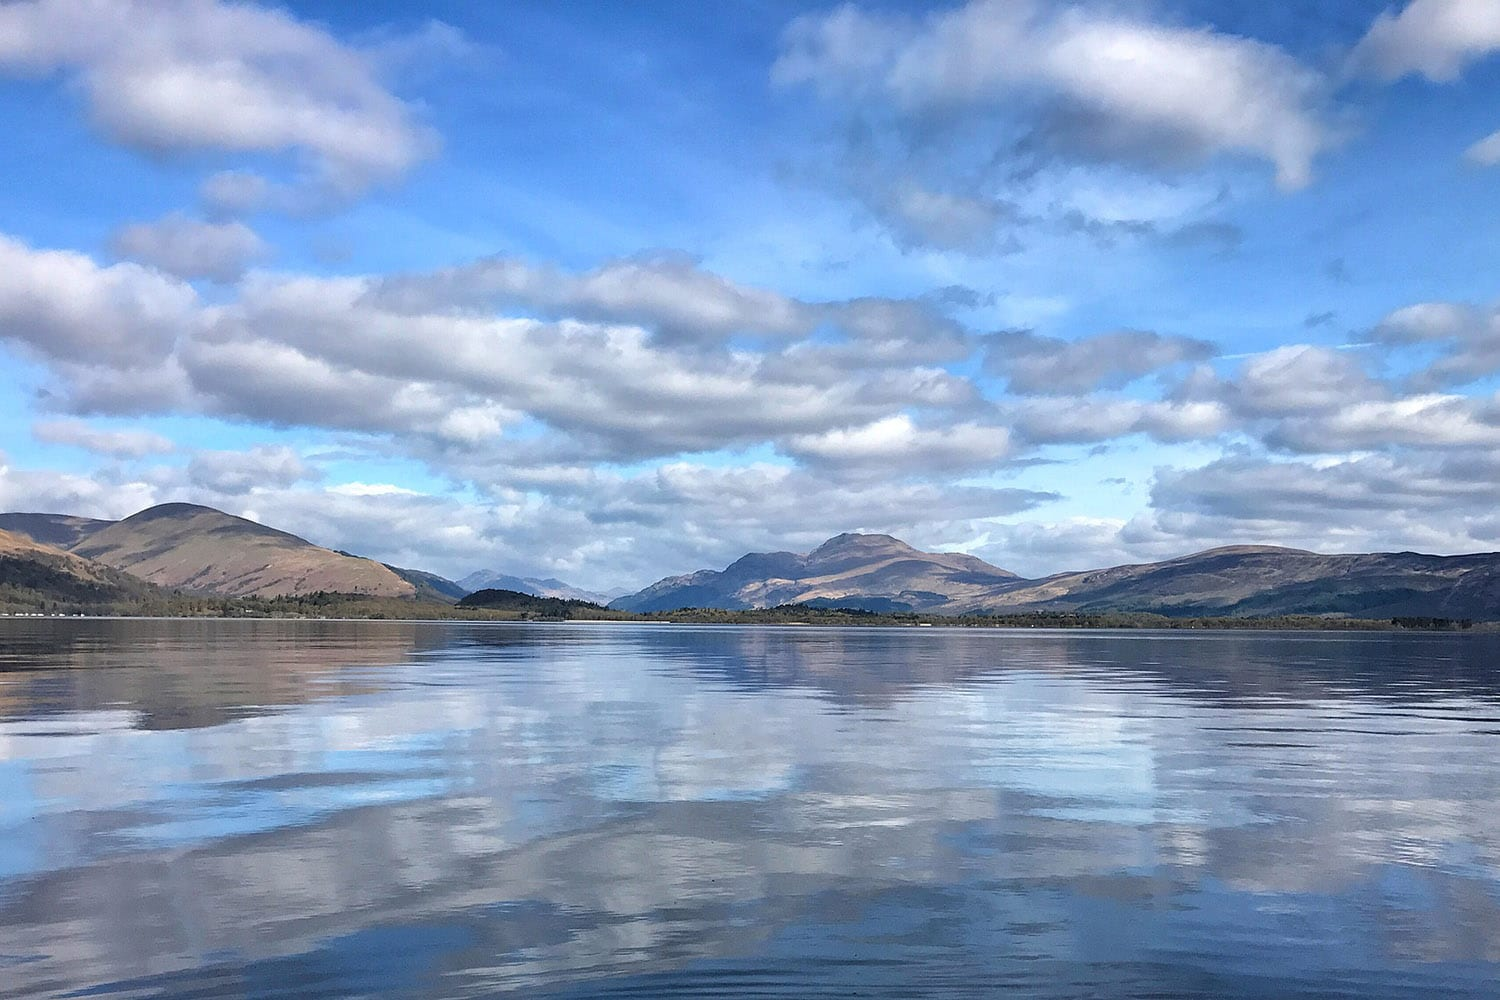 An image of the waters and scenery of Loch Lomond, a highlight of our legends and castles tour of Scotland